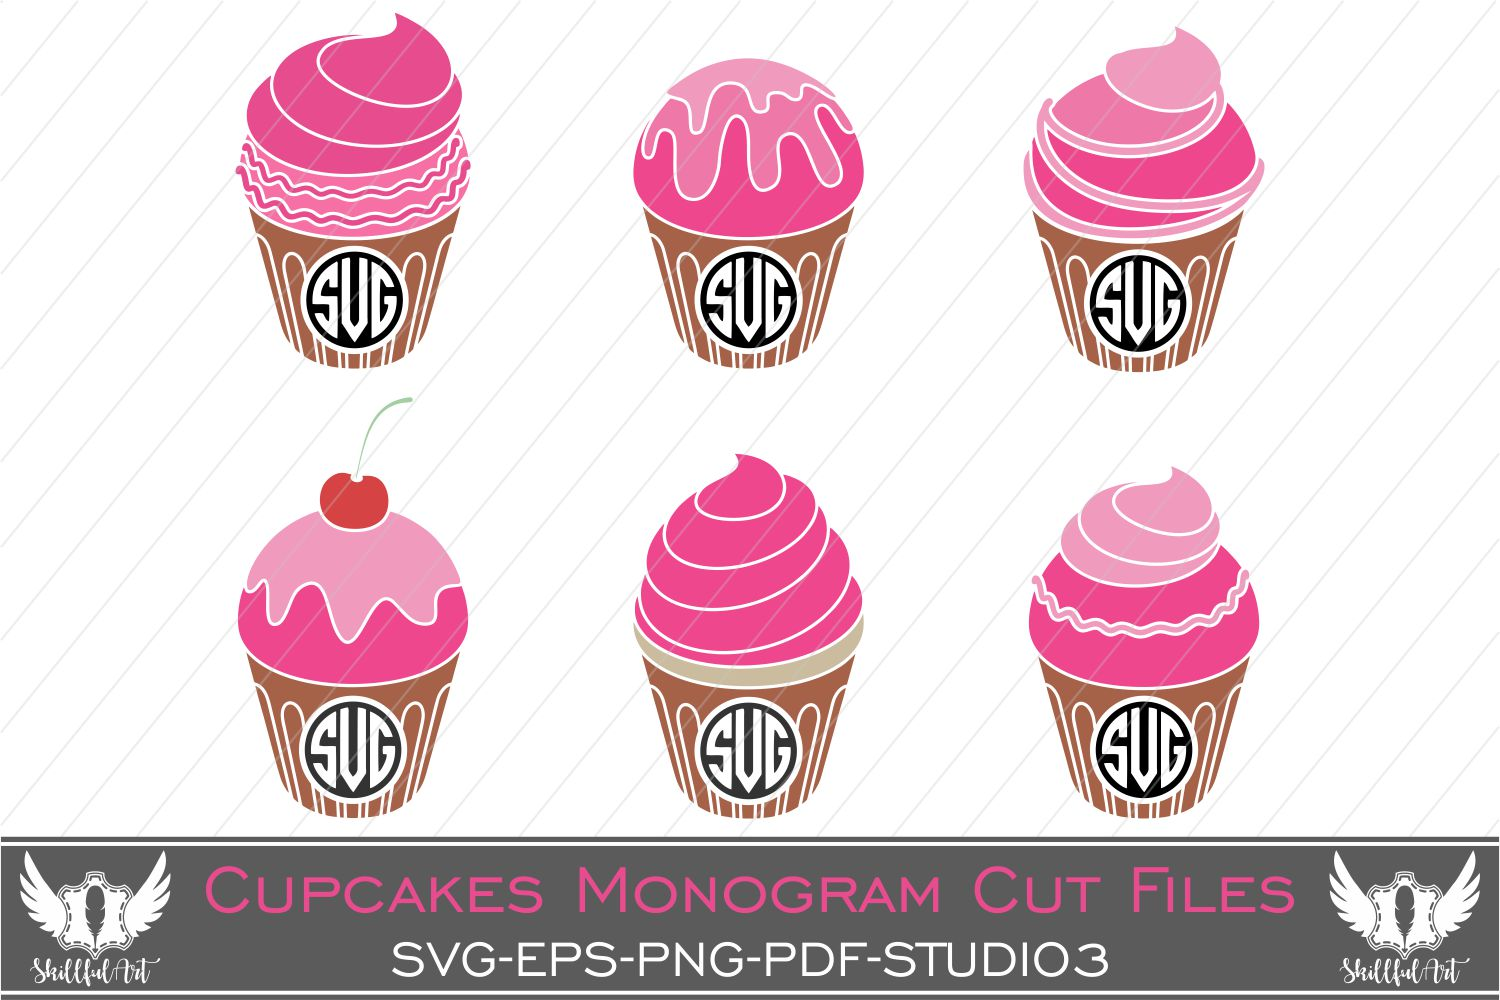 Download Free Cupcake Monogram Graphic By Skillfulart Creative Fabrica for Cricut Explore, Silhouette and other cutting machines.